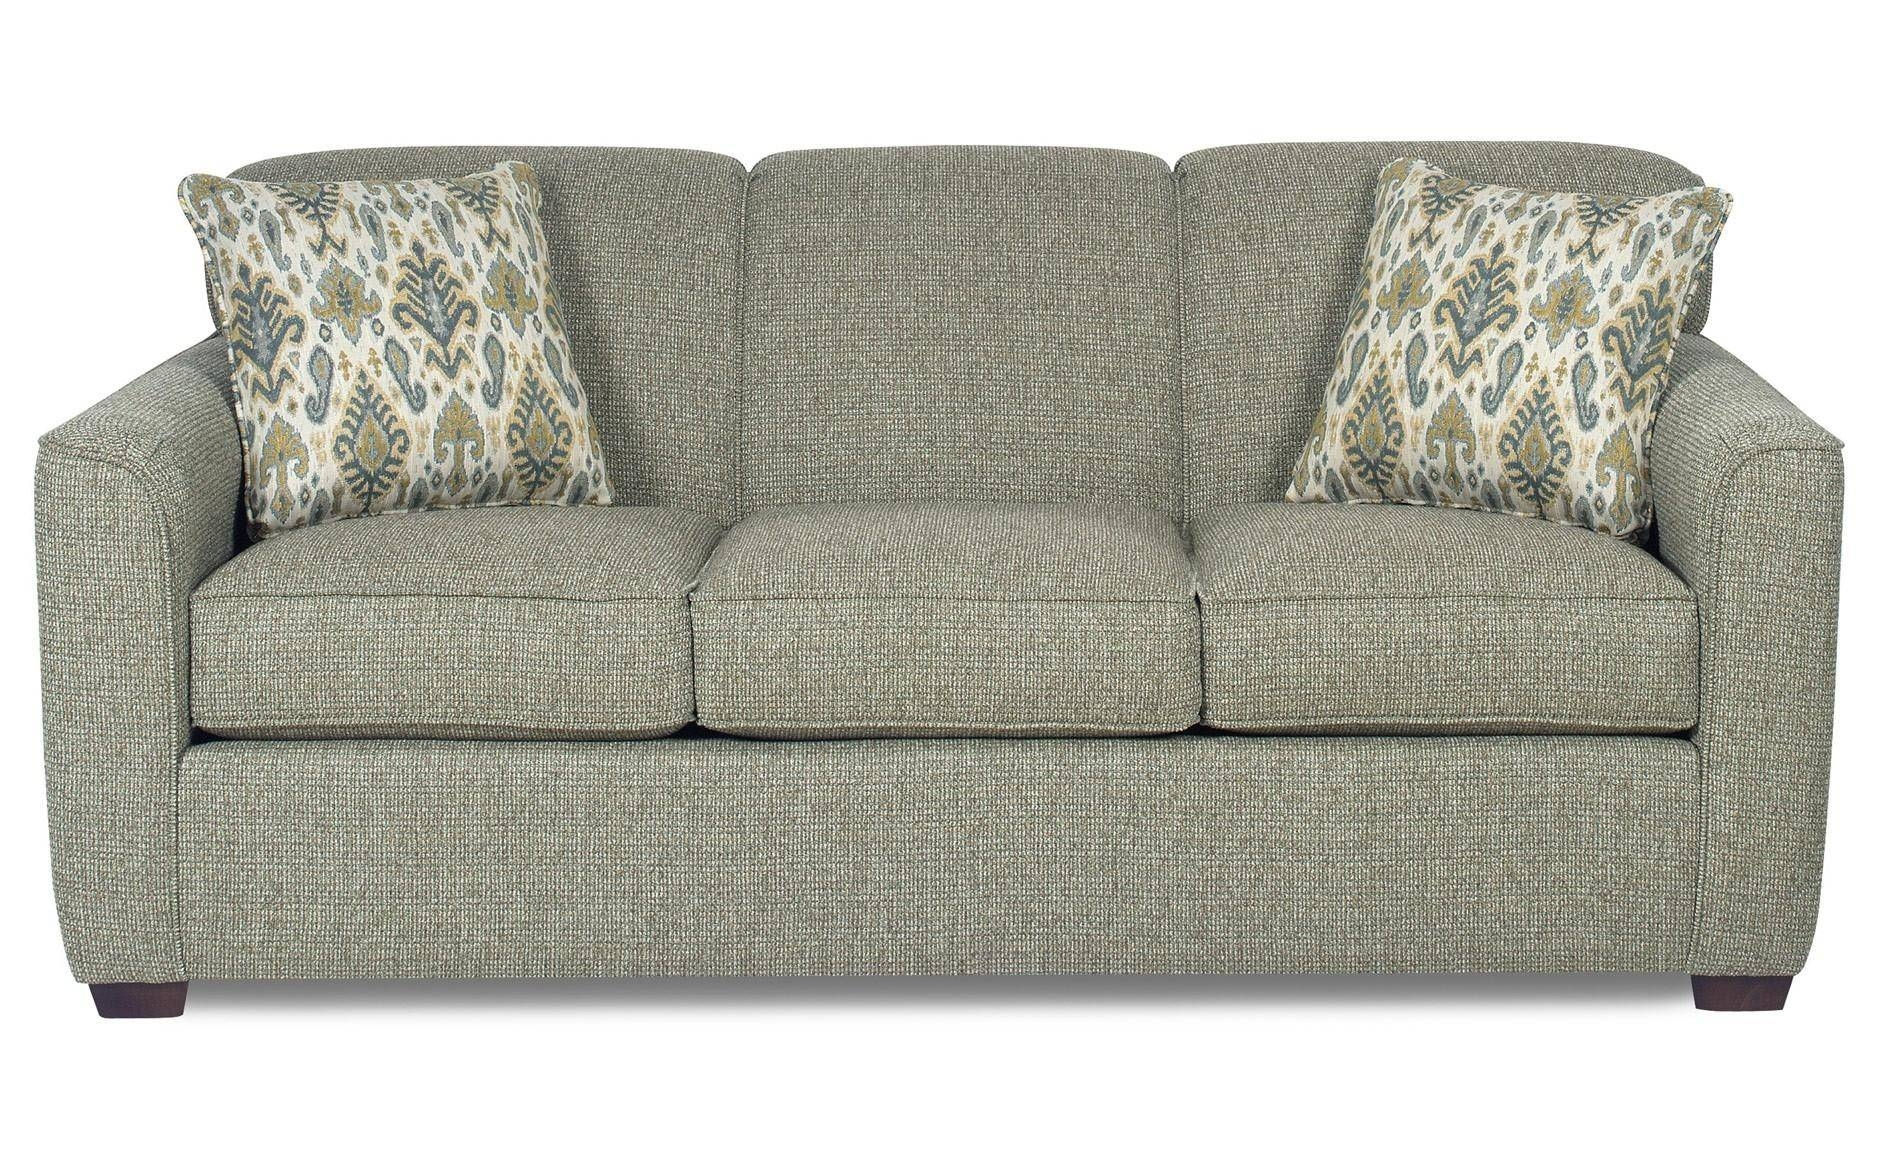 20 Inspirations Sealy Sofas | Sofa Ideas in Sealy Sofas (Image 2 of 15)